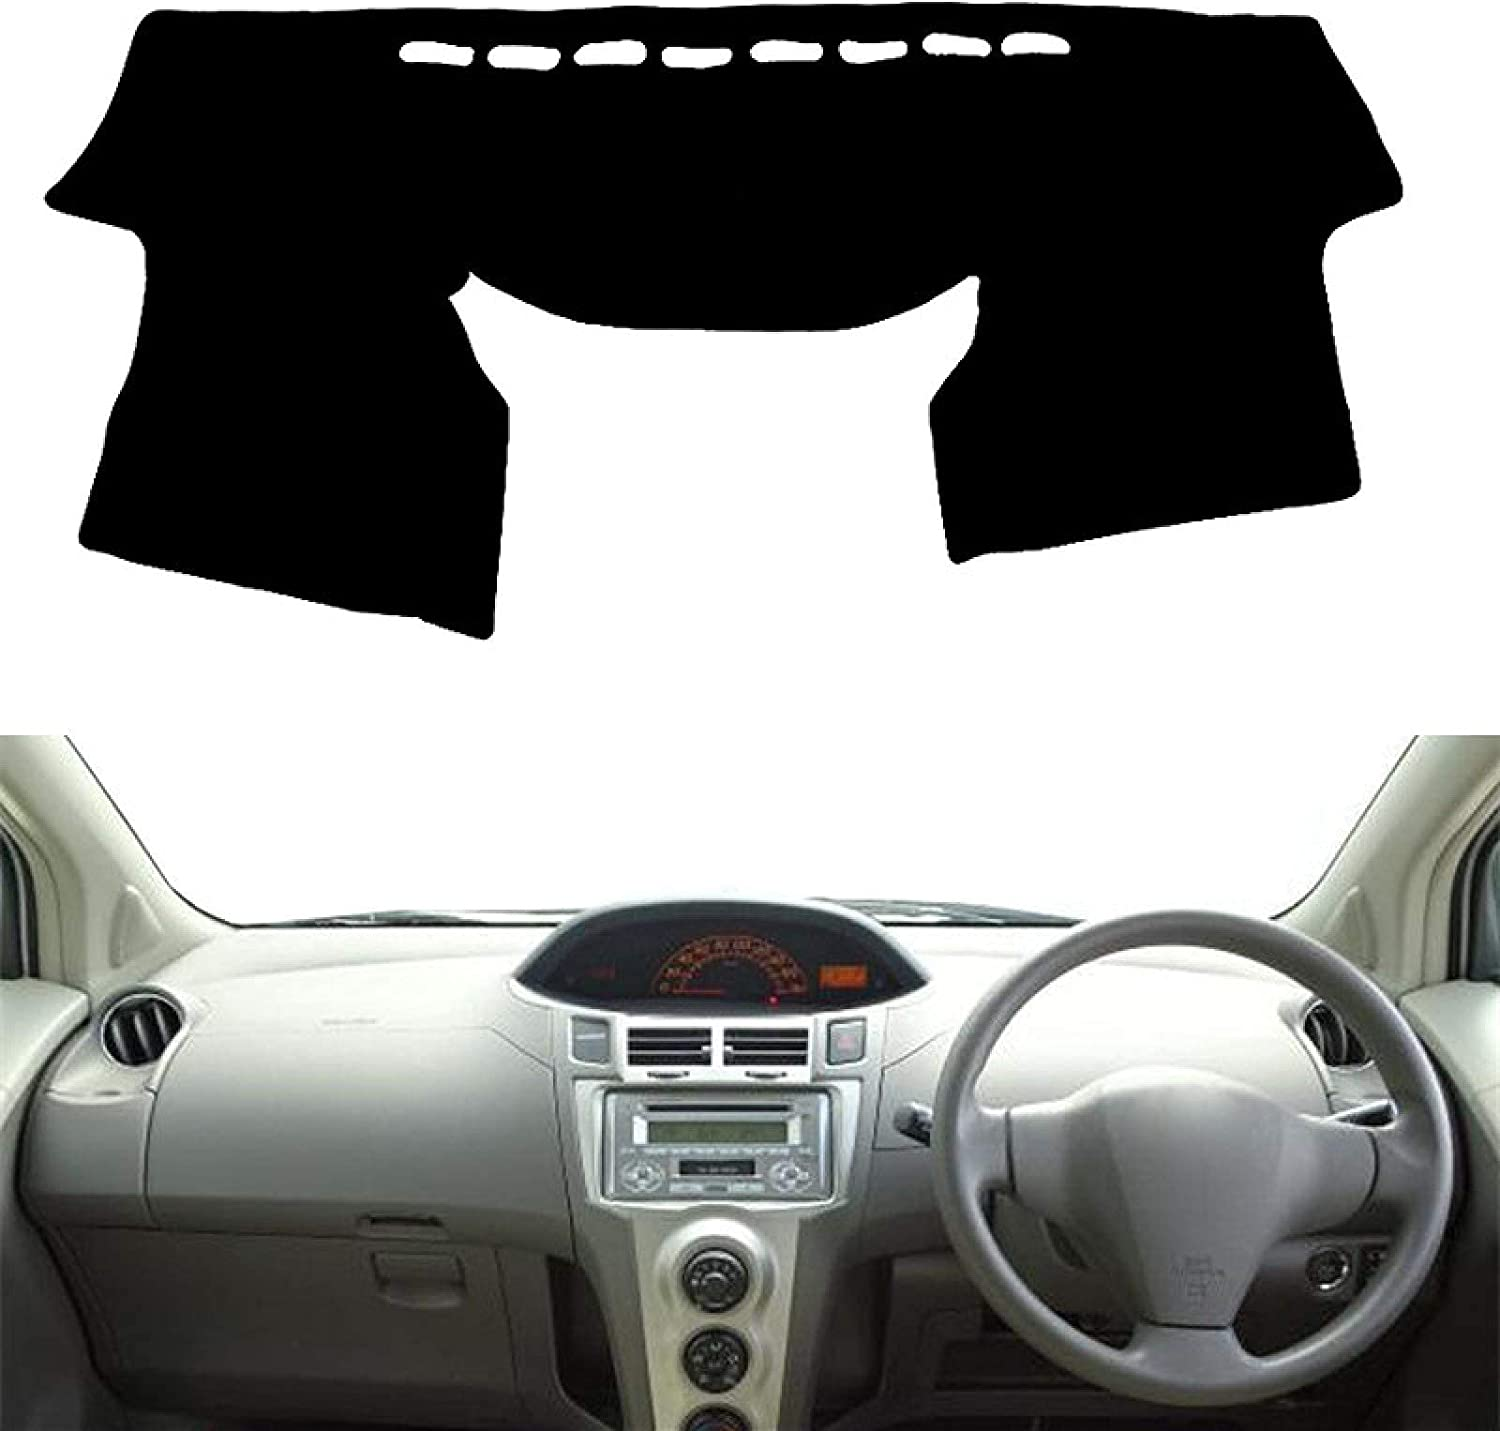 Dashboard Safety Directly managed store and trust Cover for Toyota Vitz Charade Daihatsu Yaris 2005-2011